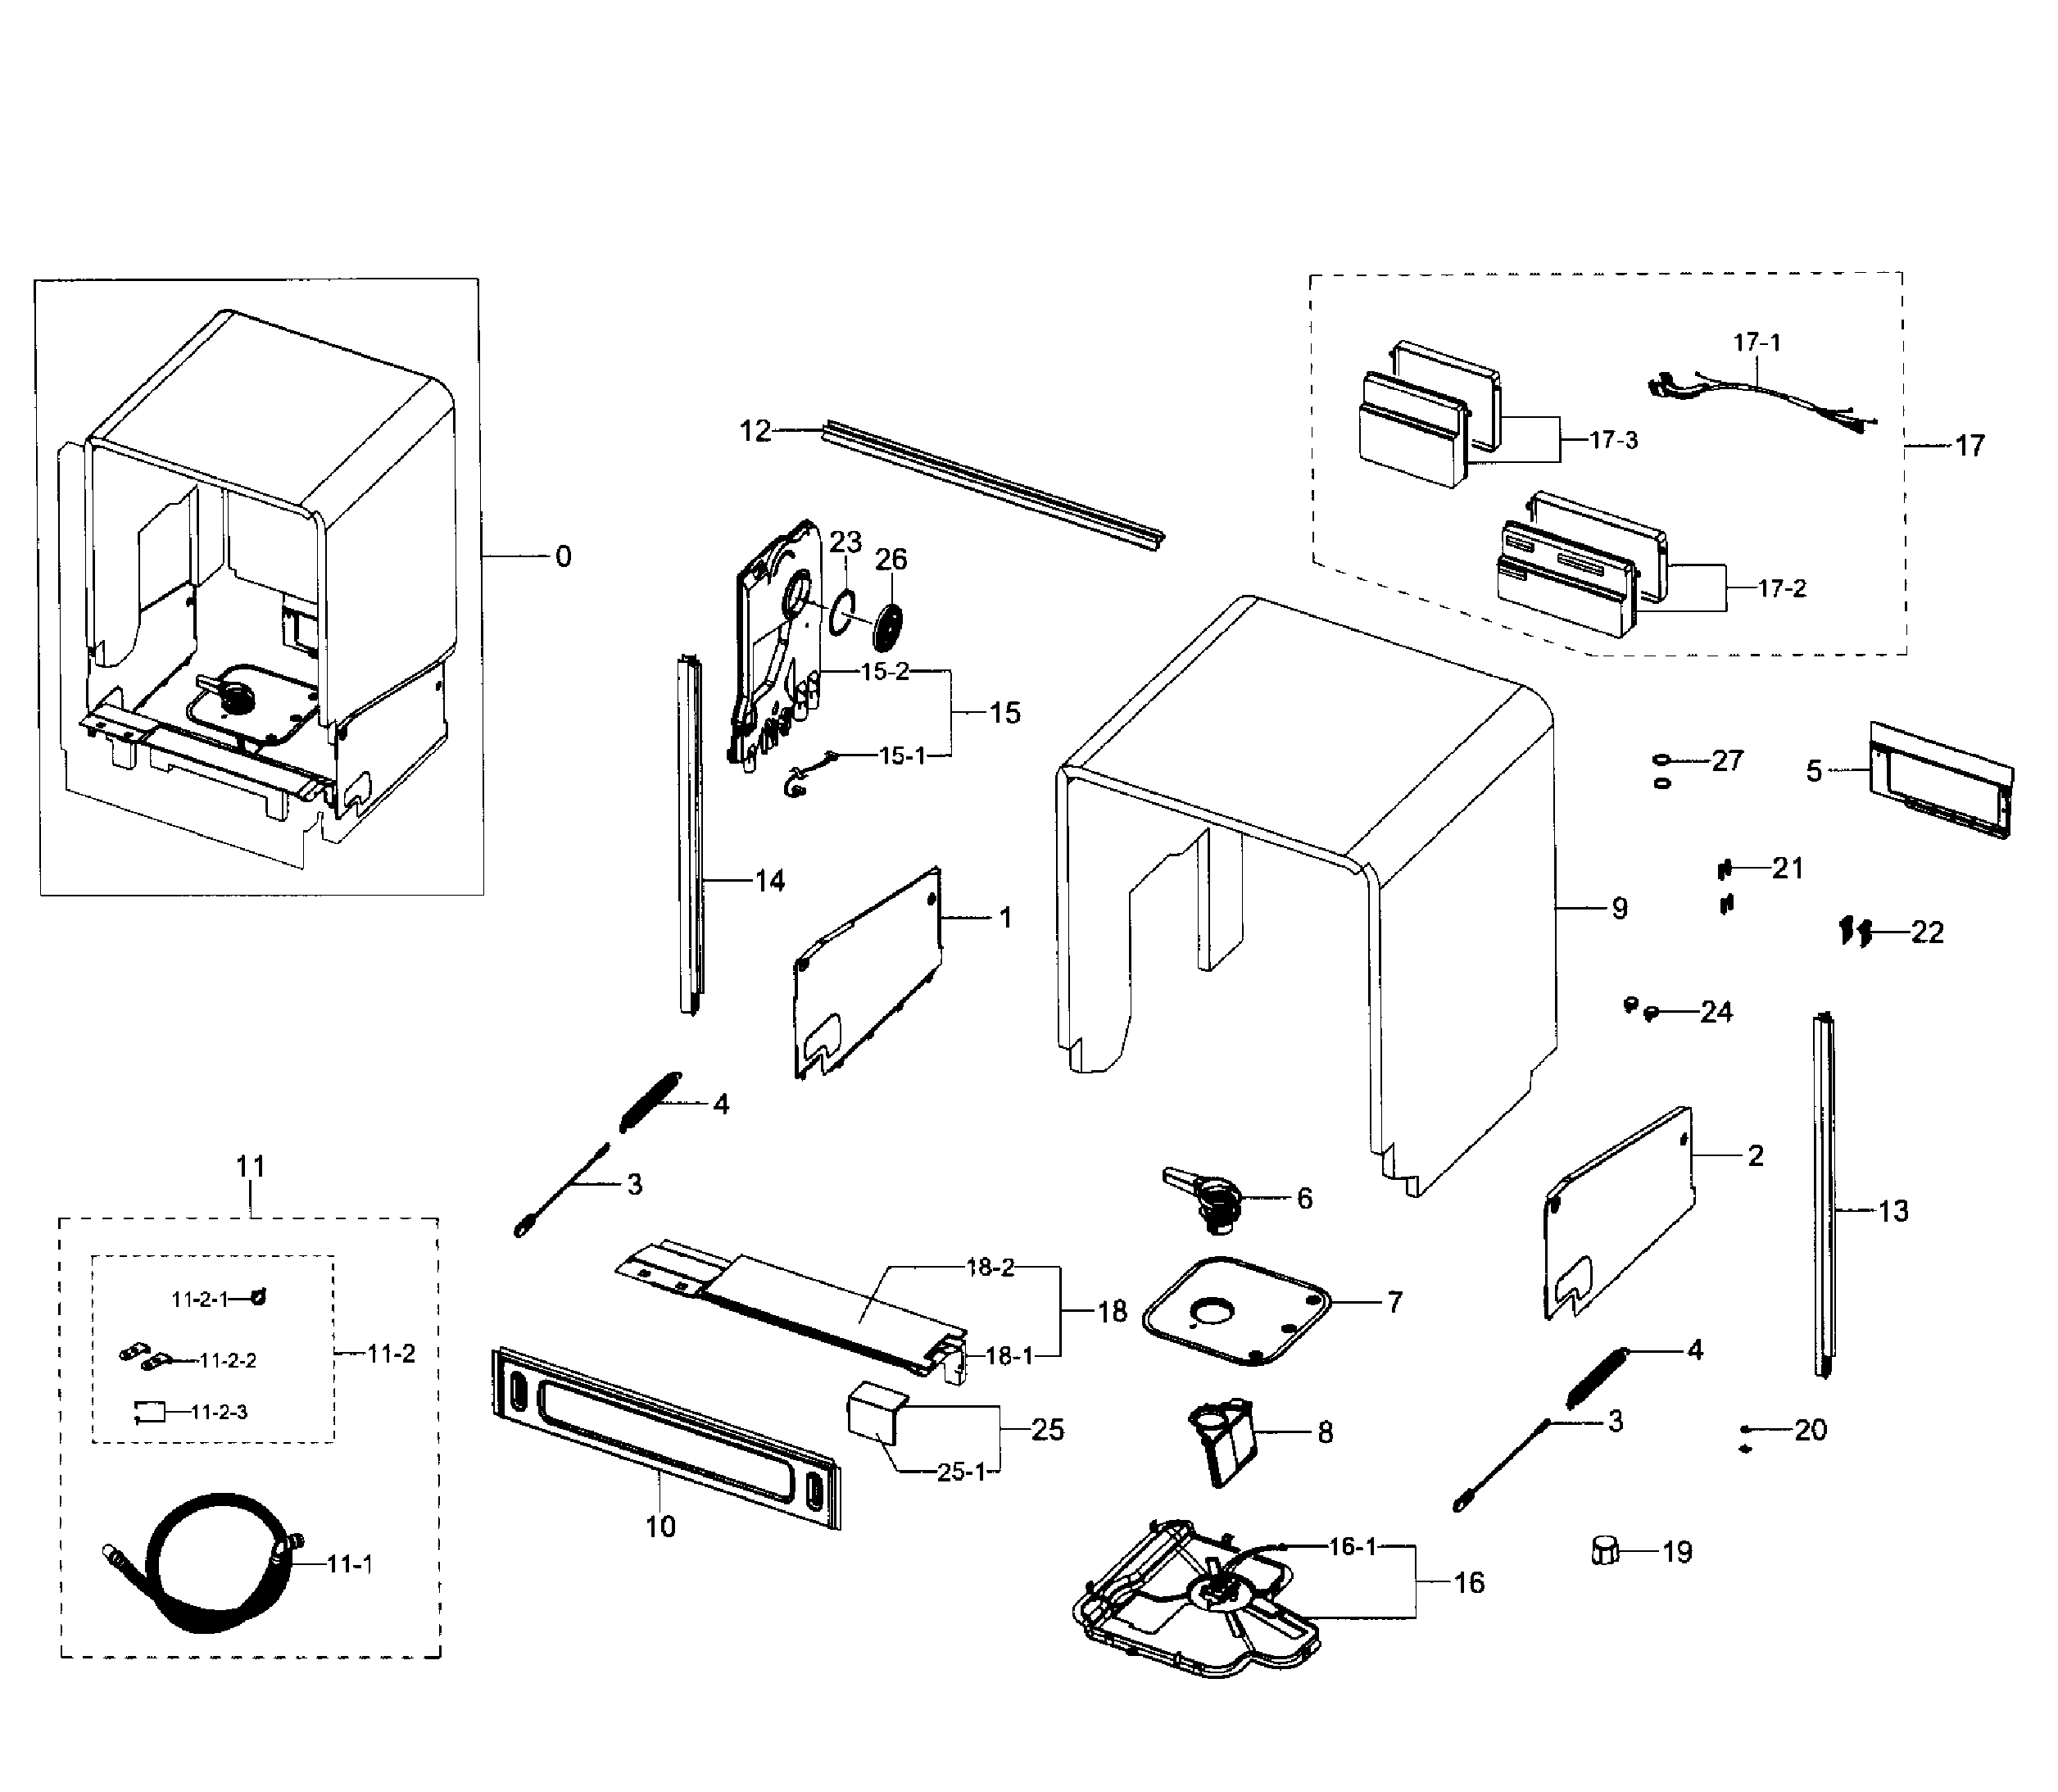 Samsung DW80J7550US/AA-01 cabinet diagram